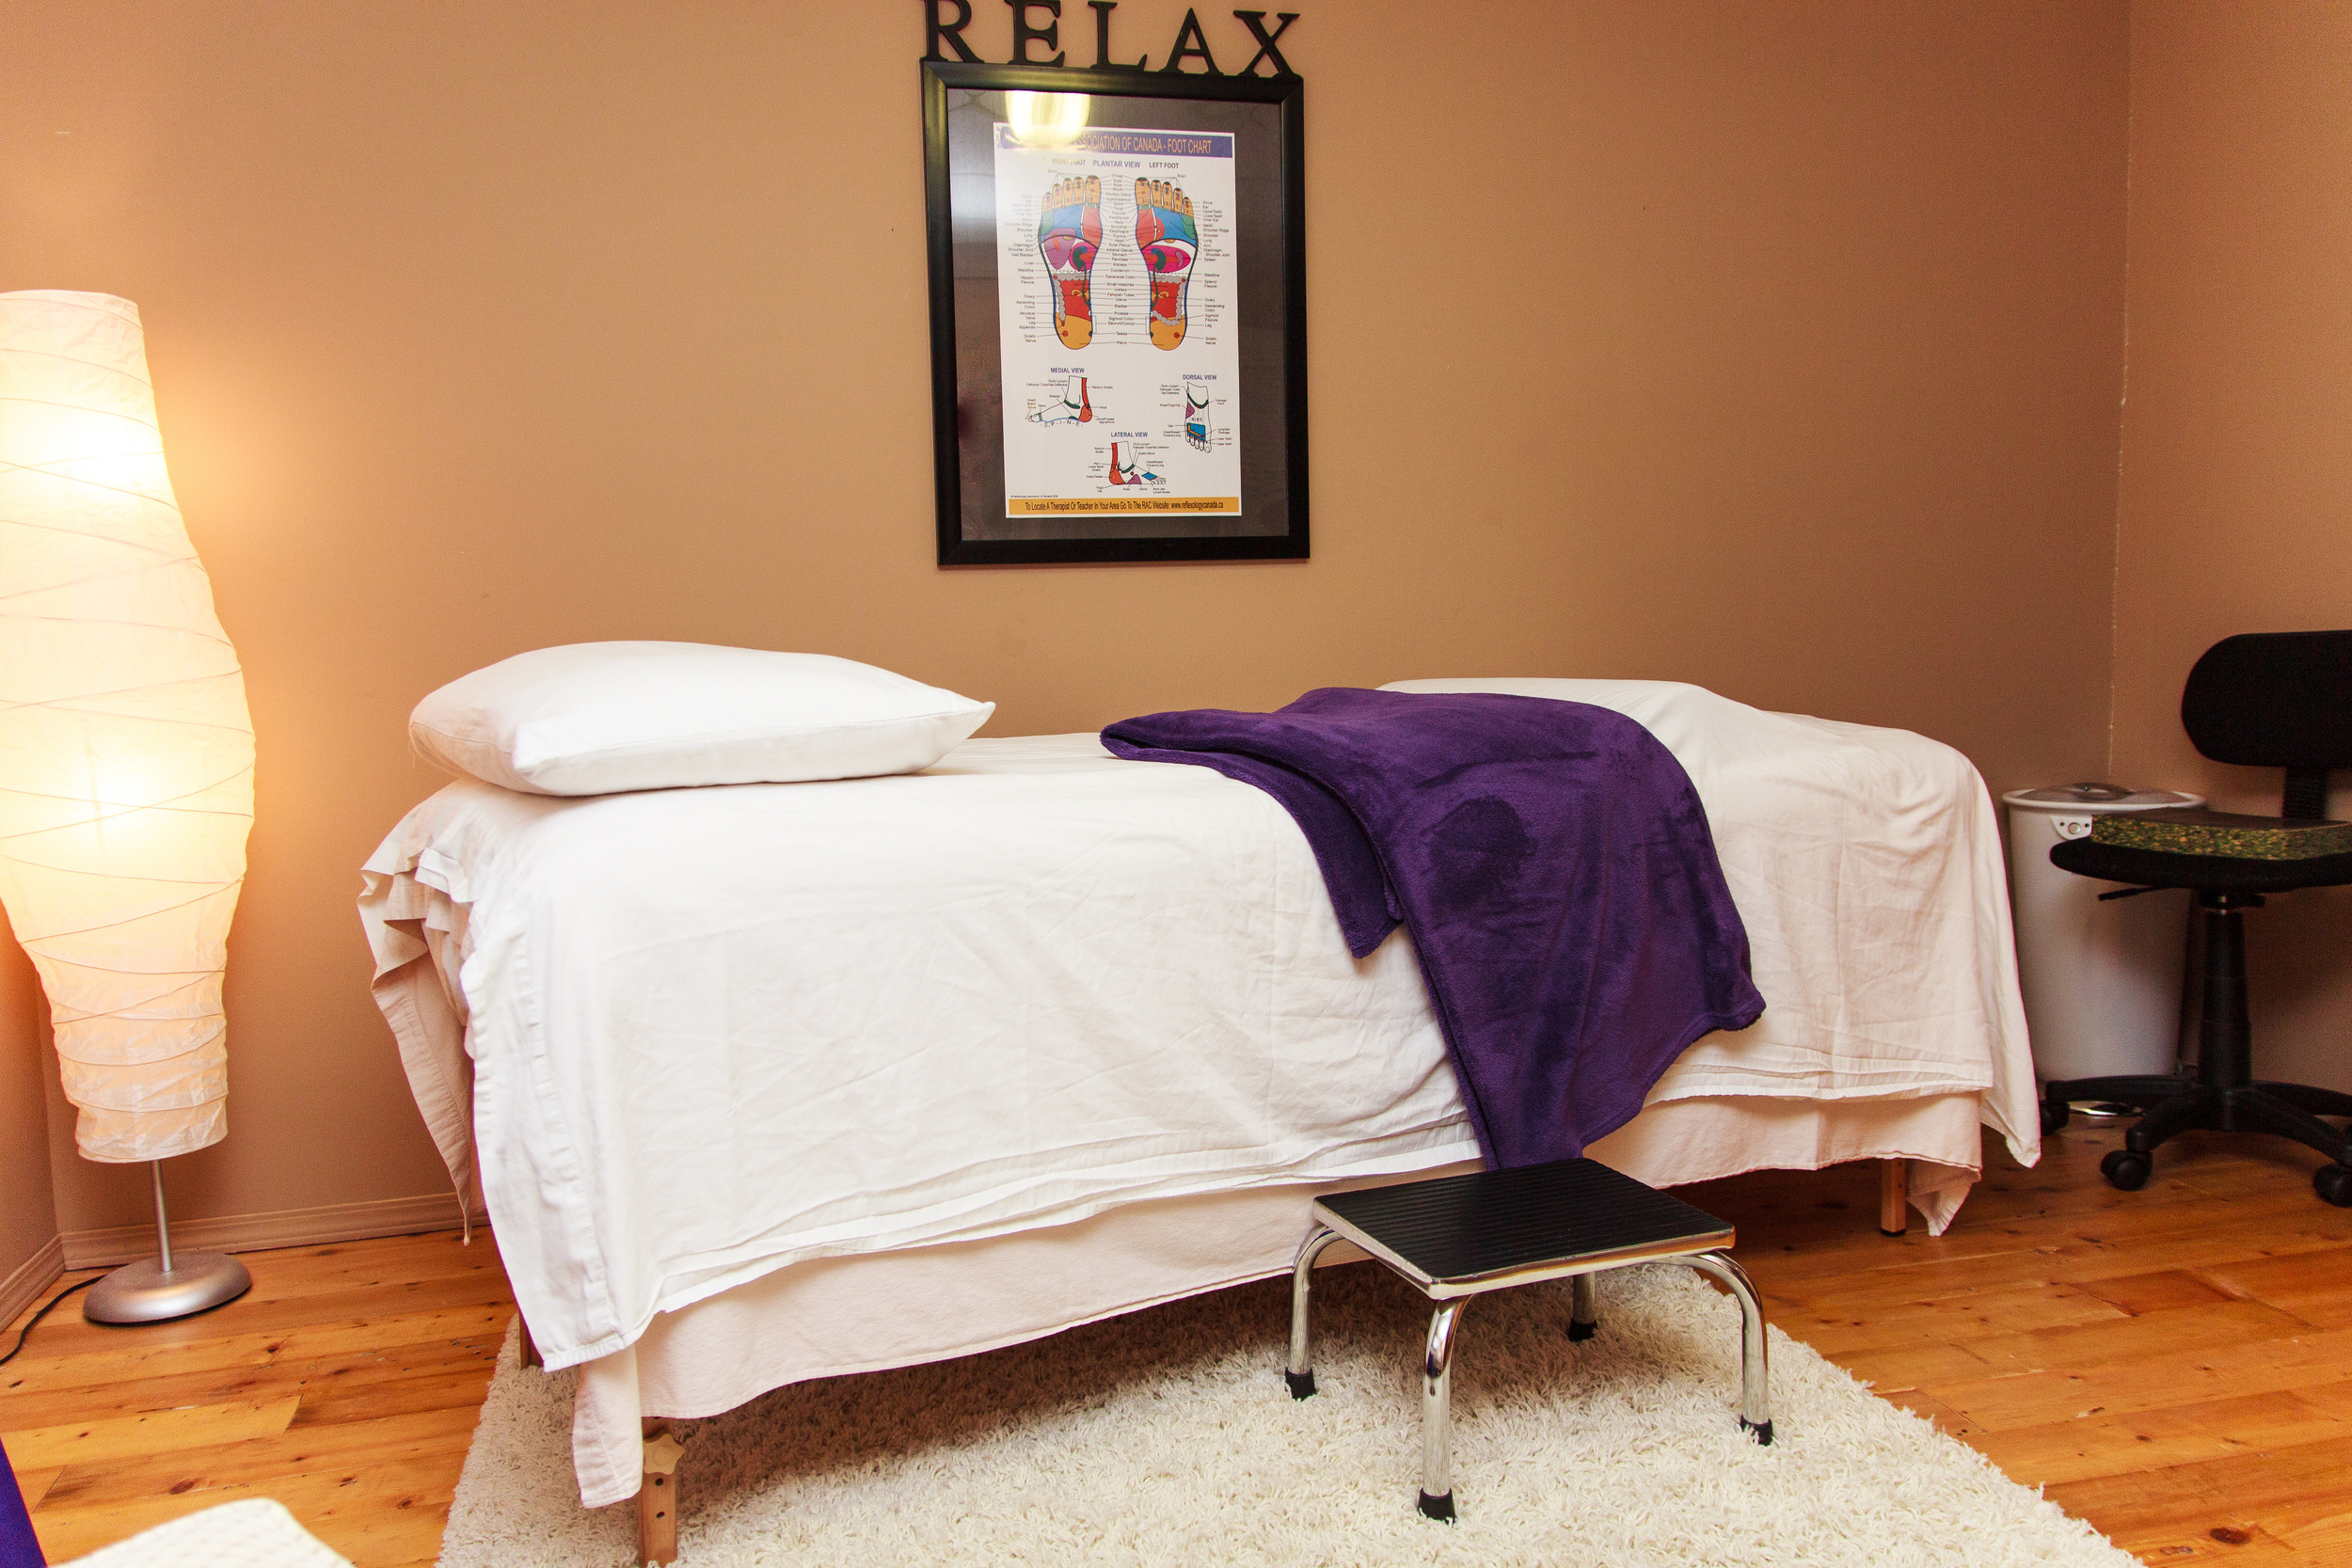 the treatment room all ready to give your feet a treat.